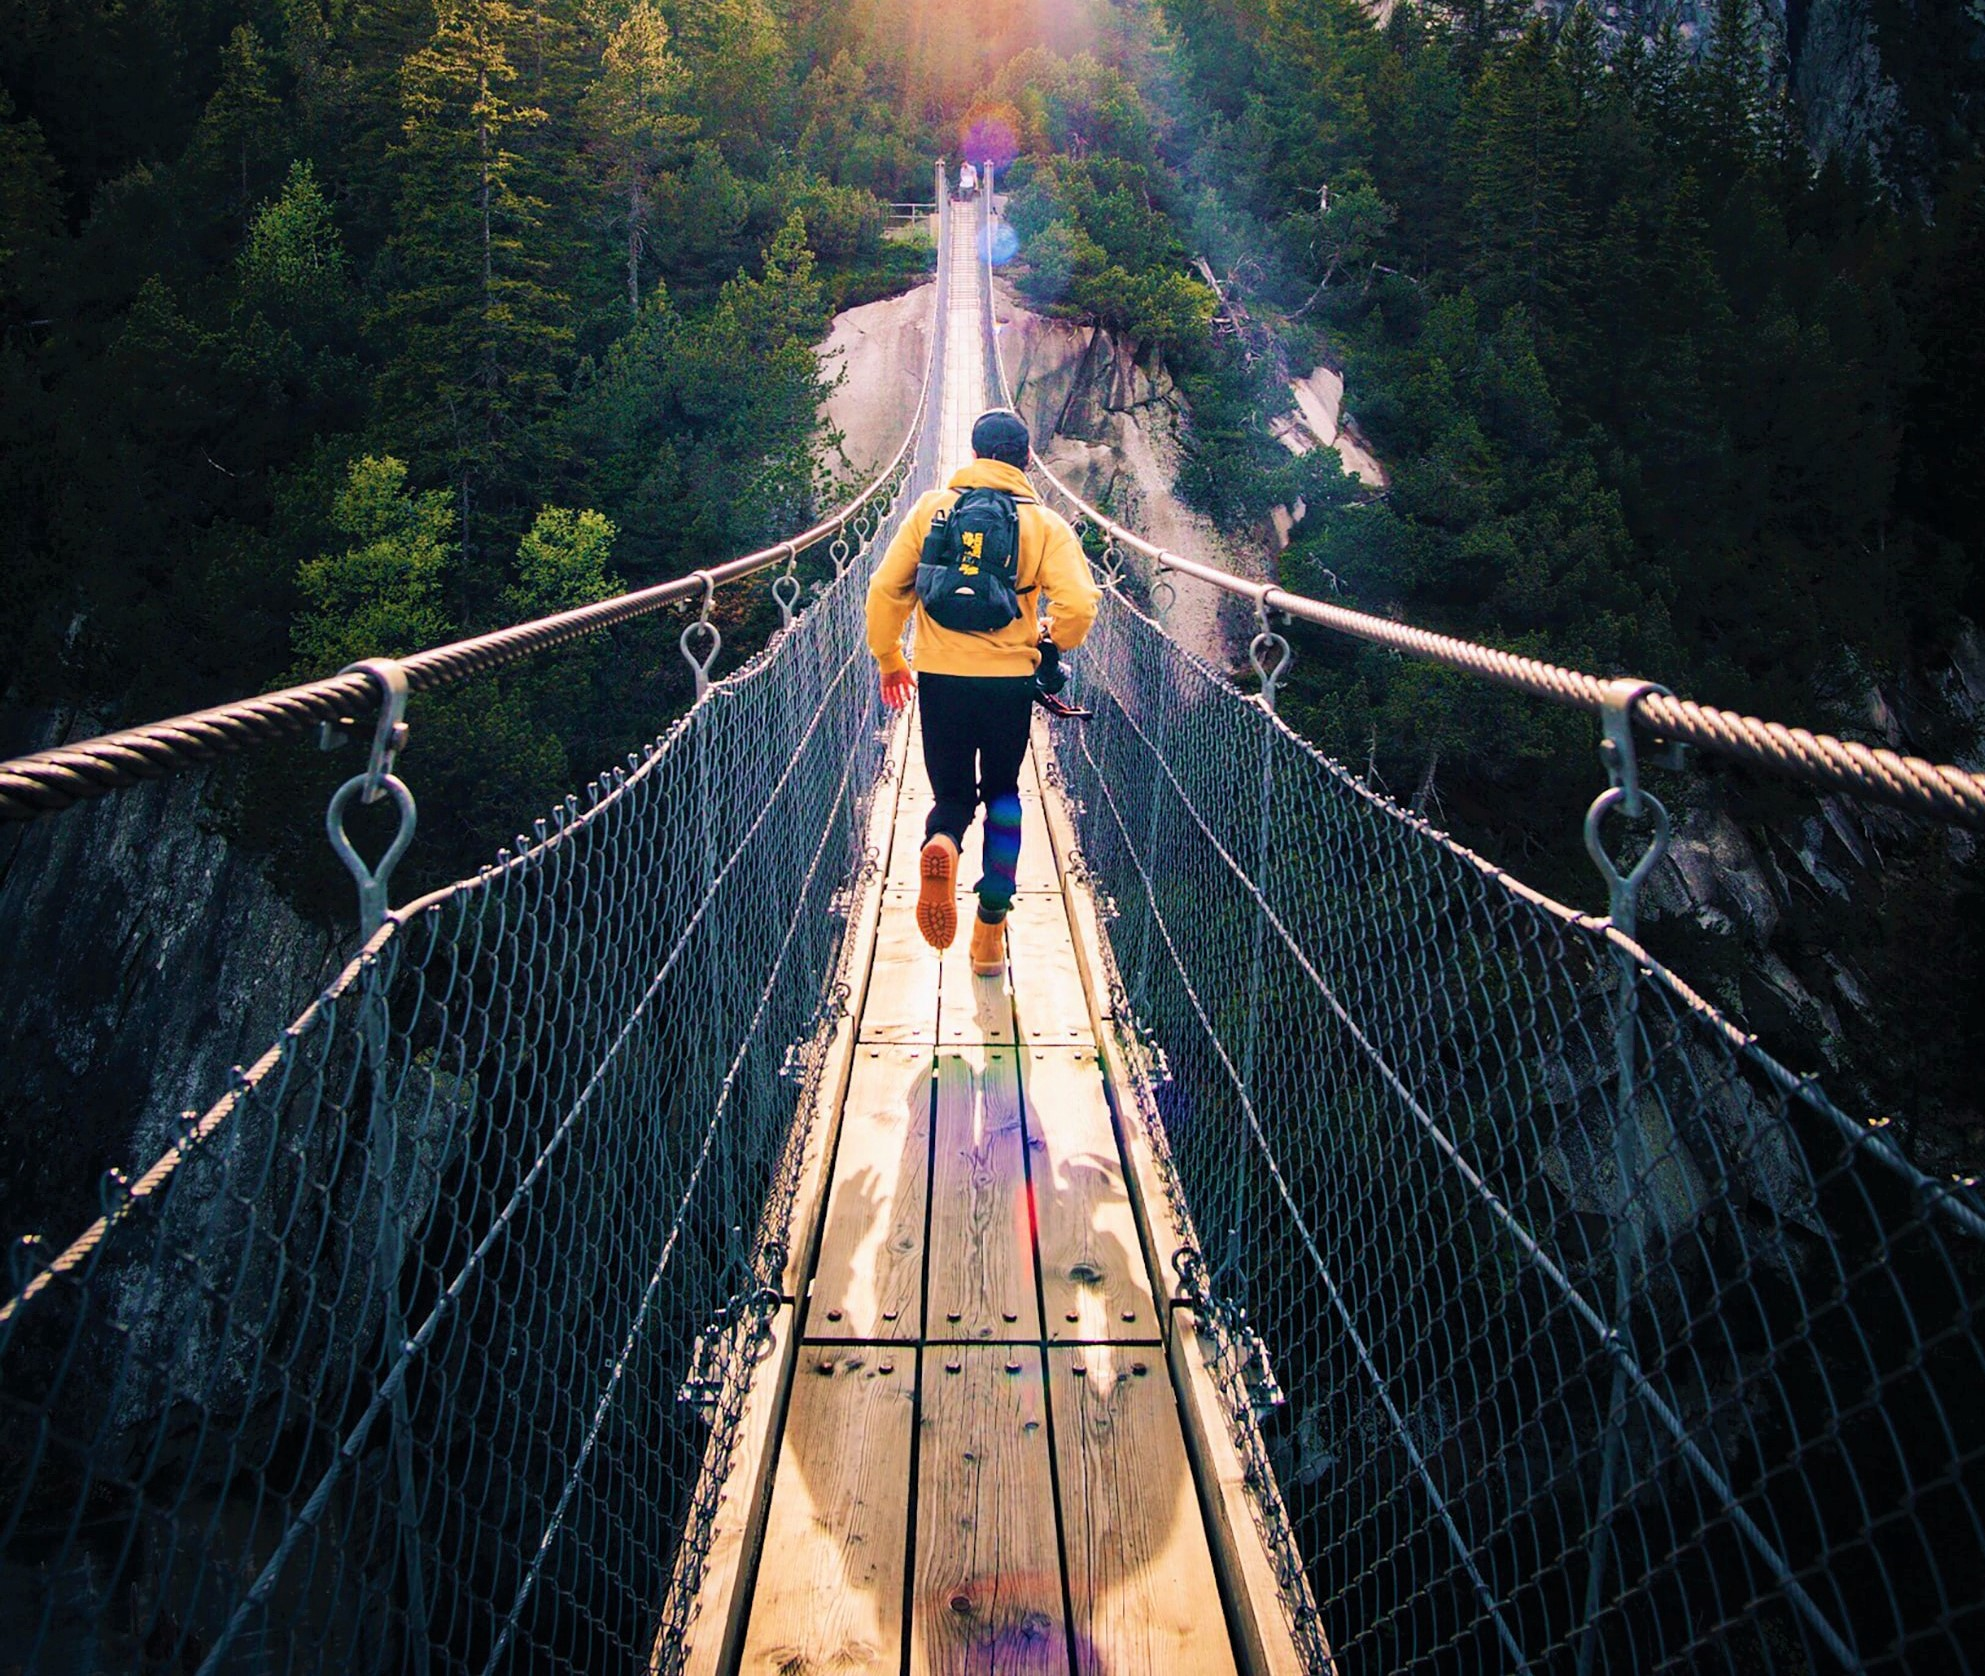 back view of man wearing yellow jacket and backpack running across suspension bridge